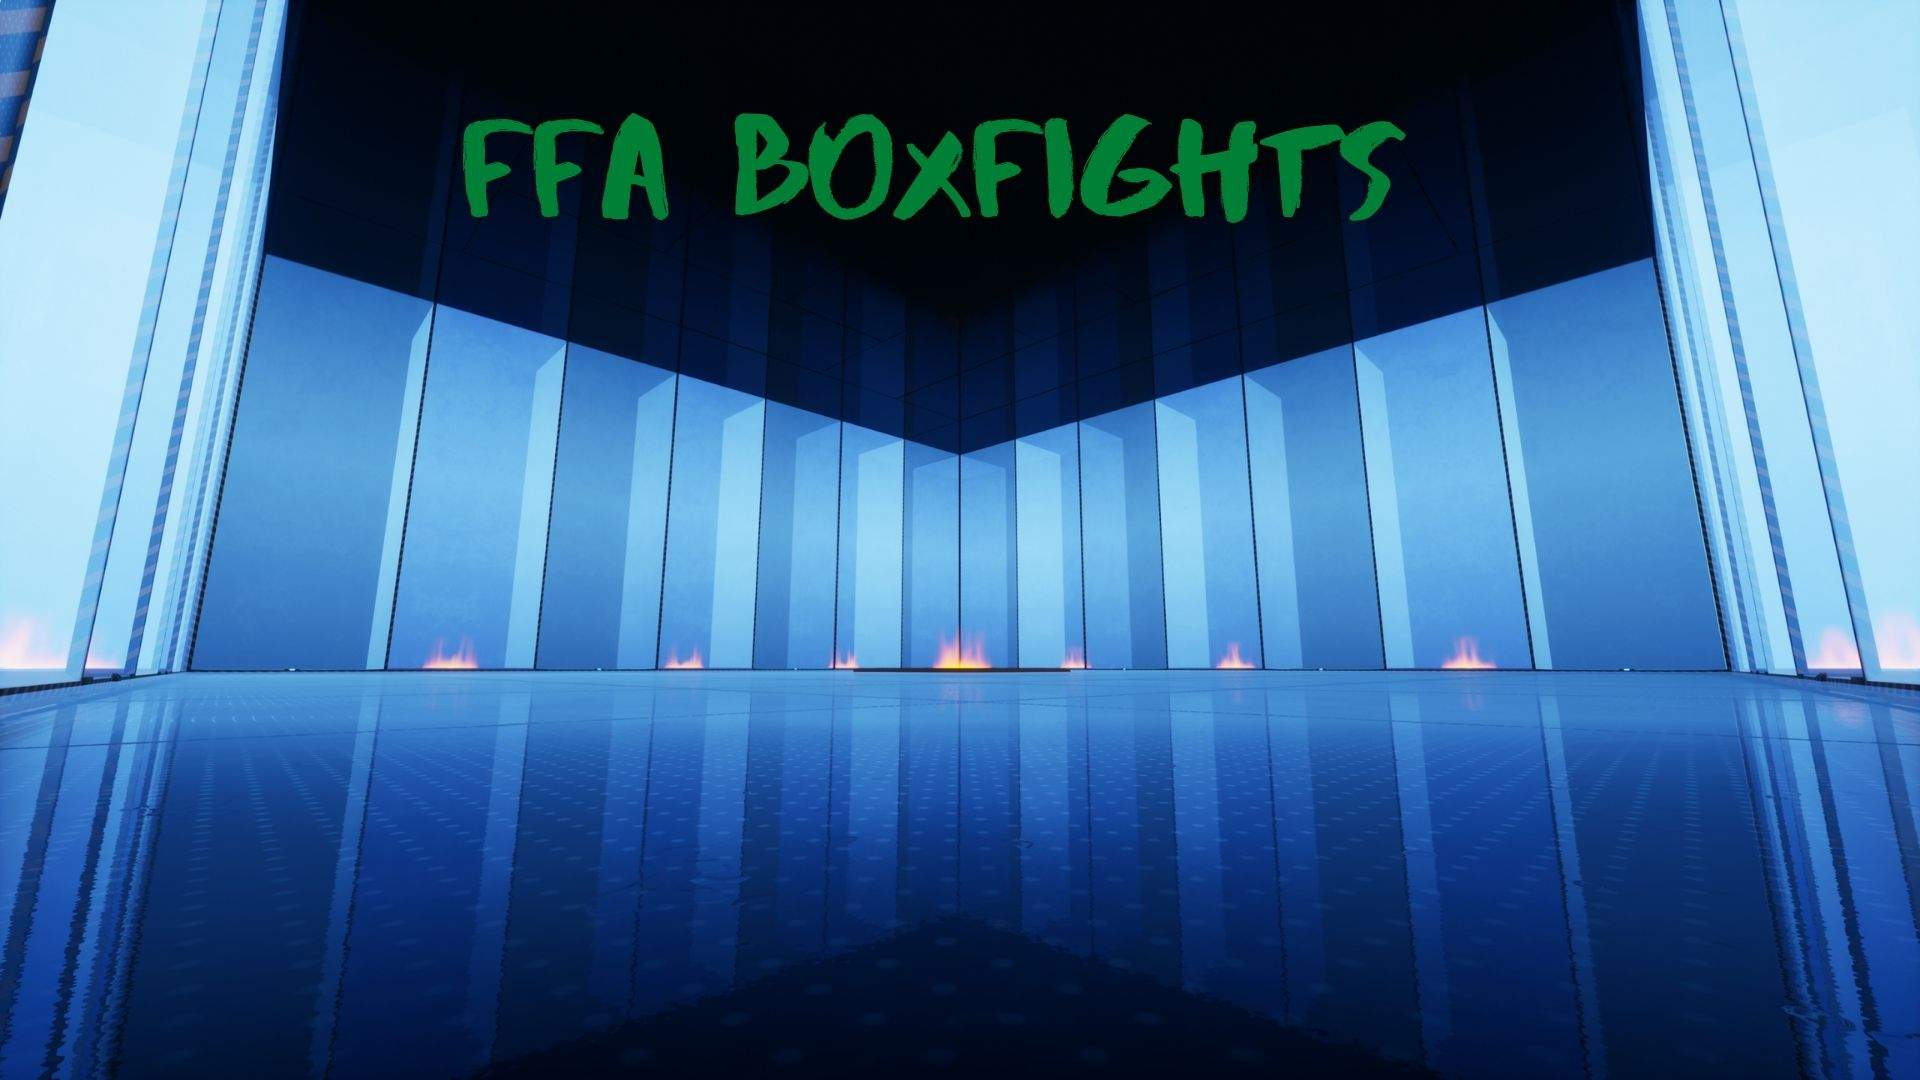 FLOOR IS LAVA FFA BOXFIGHTS